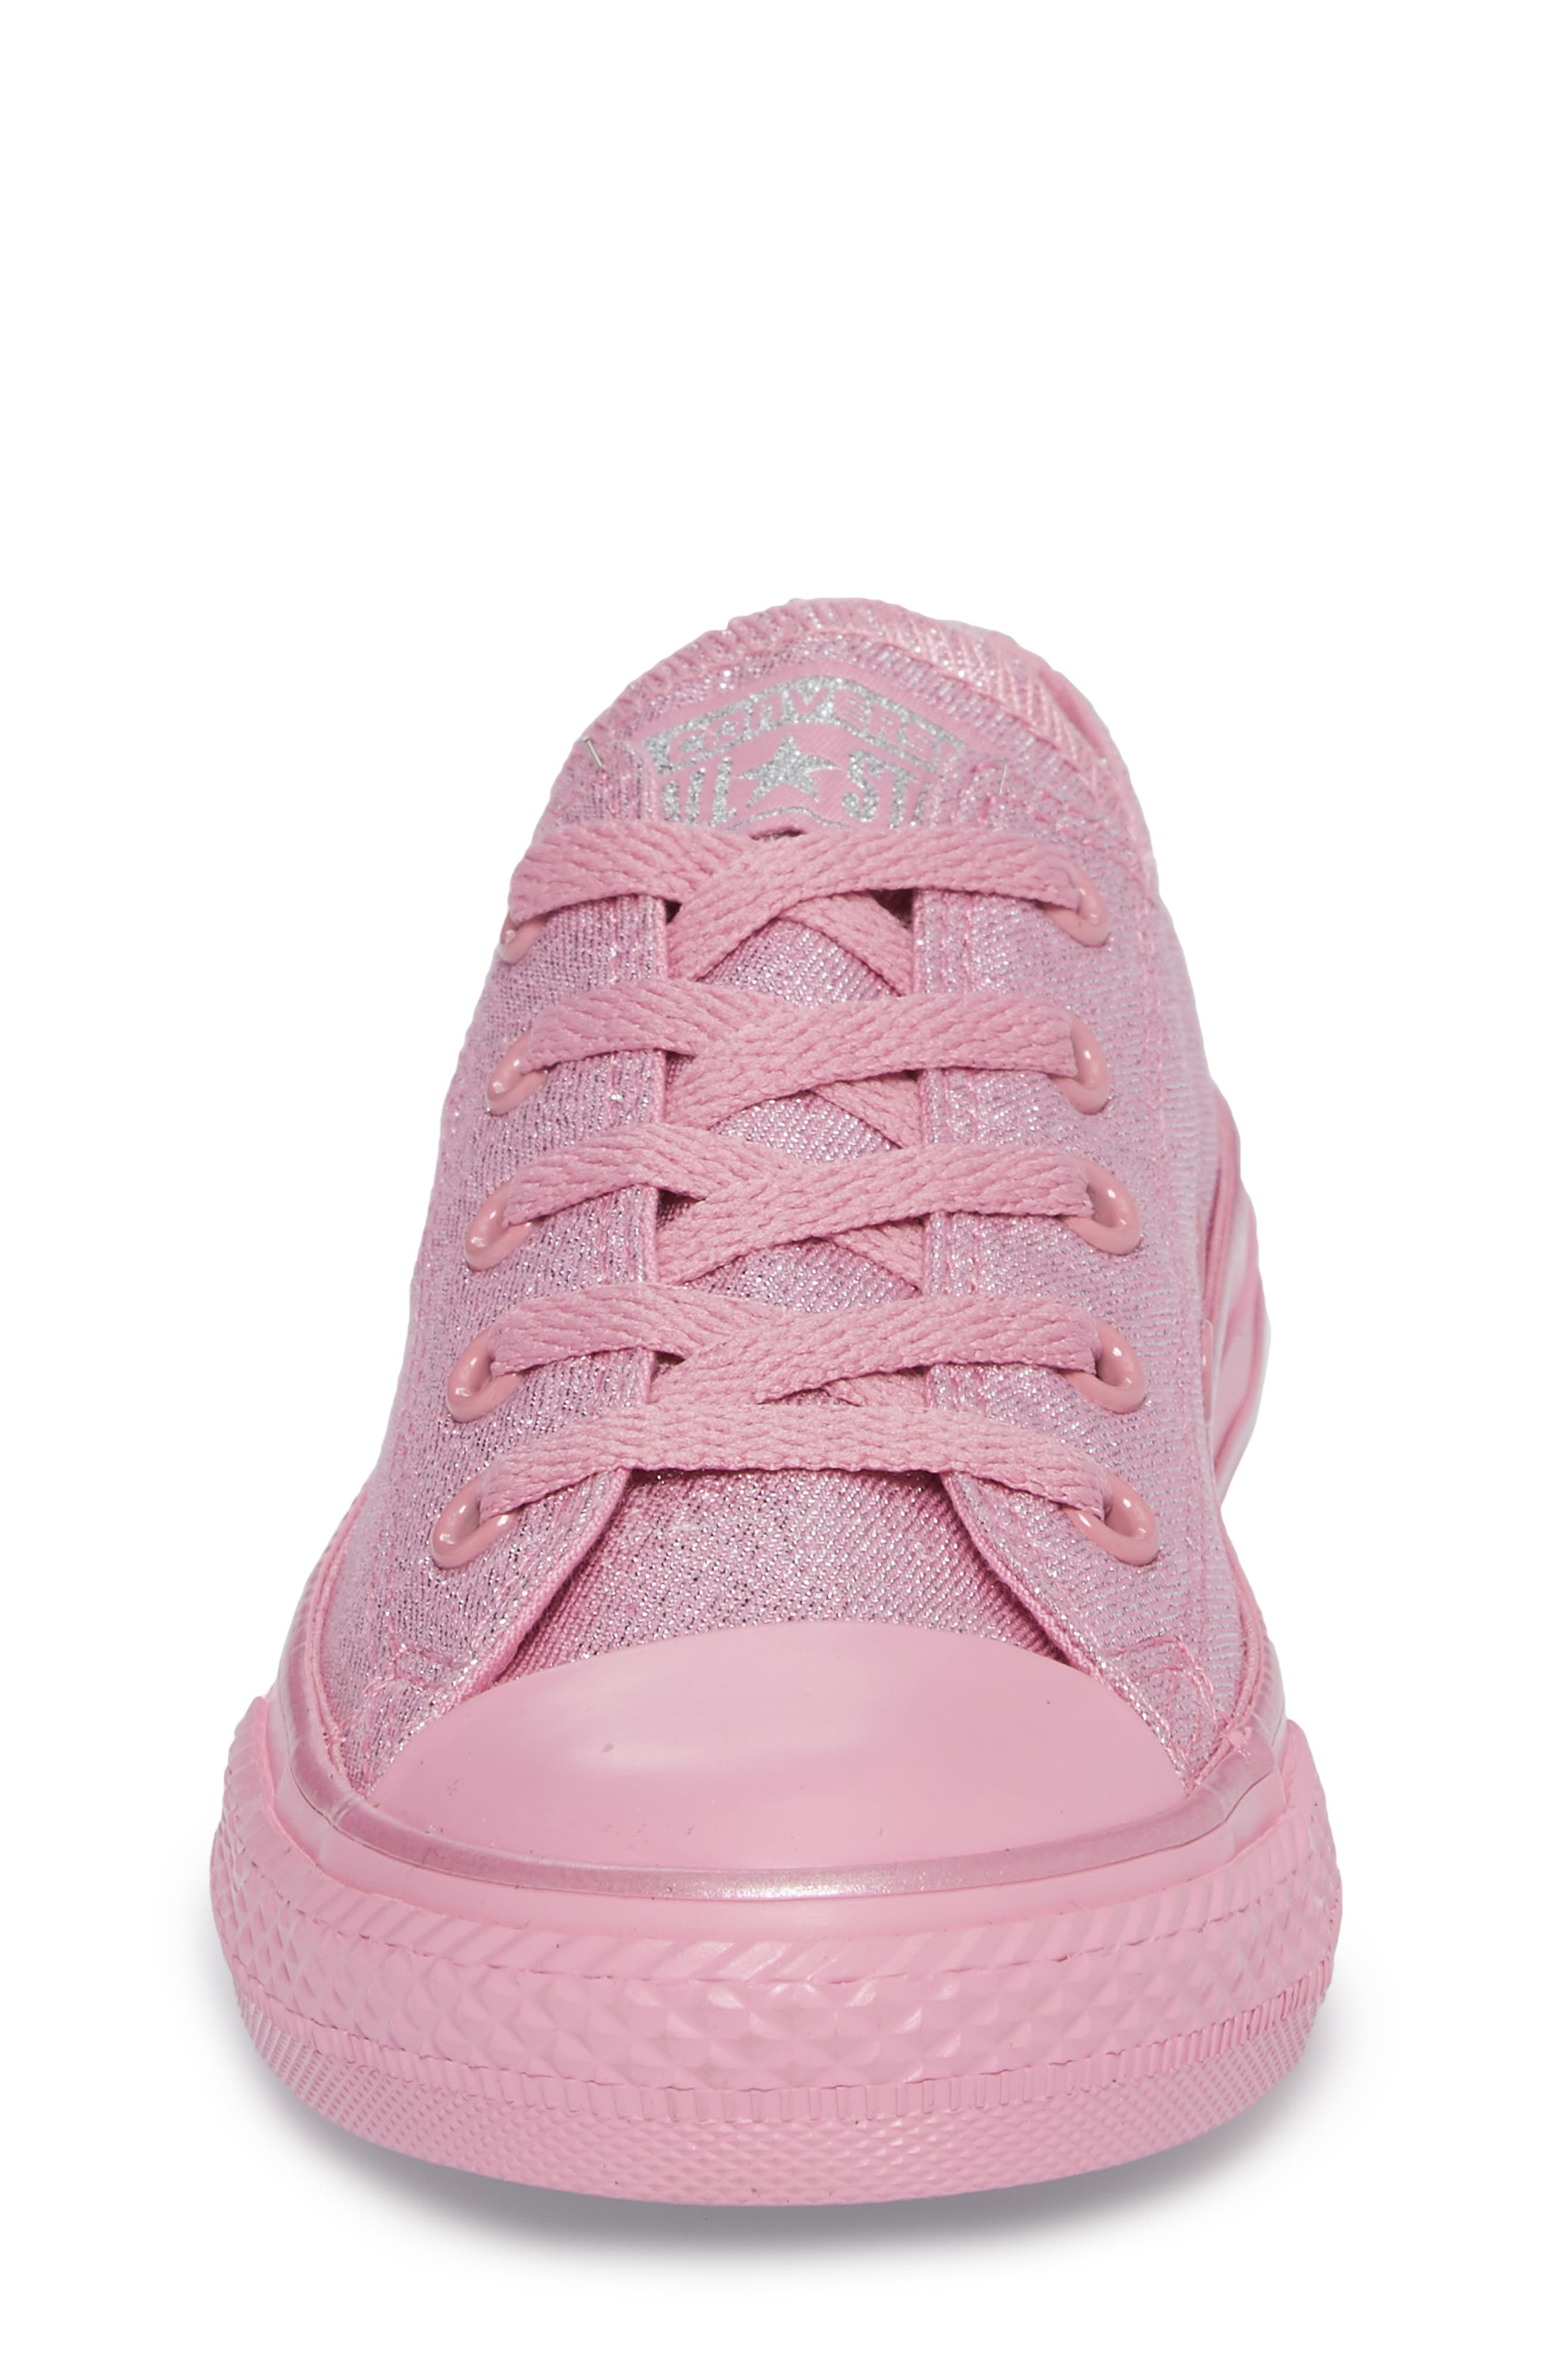 All Star<sup>®</sup> Mono Shine Low Top Sneaker,                             Alternate thumbnail 4, color,                             650